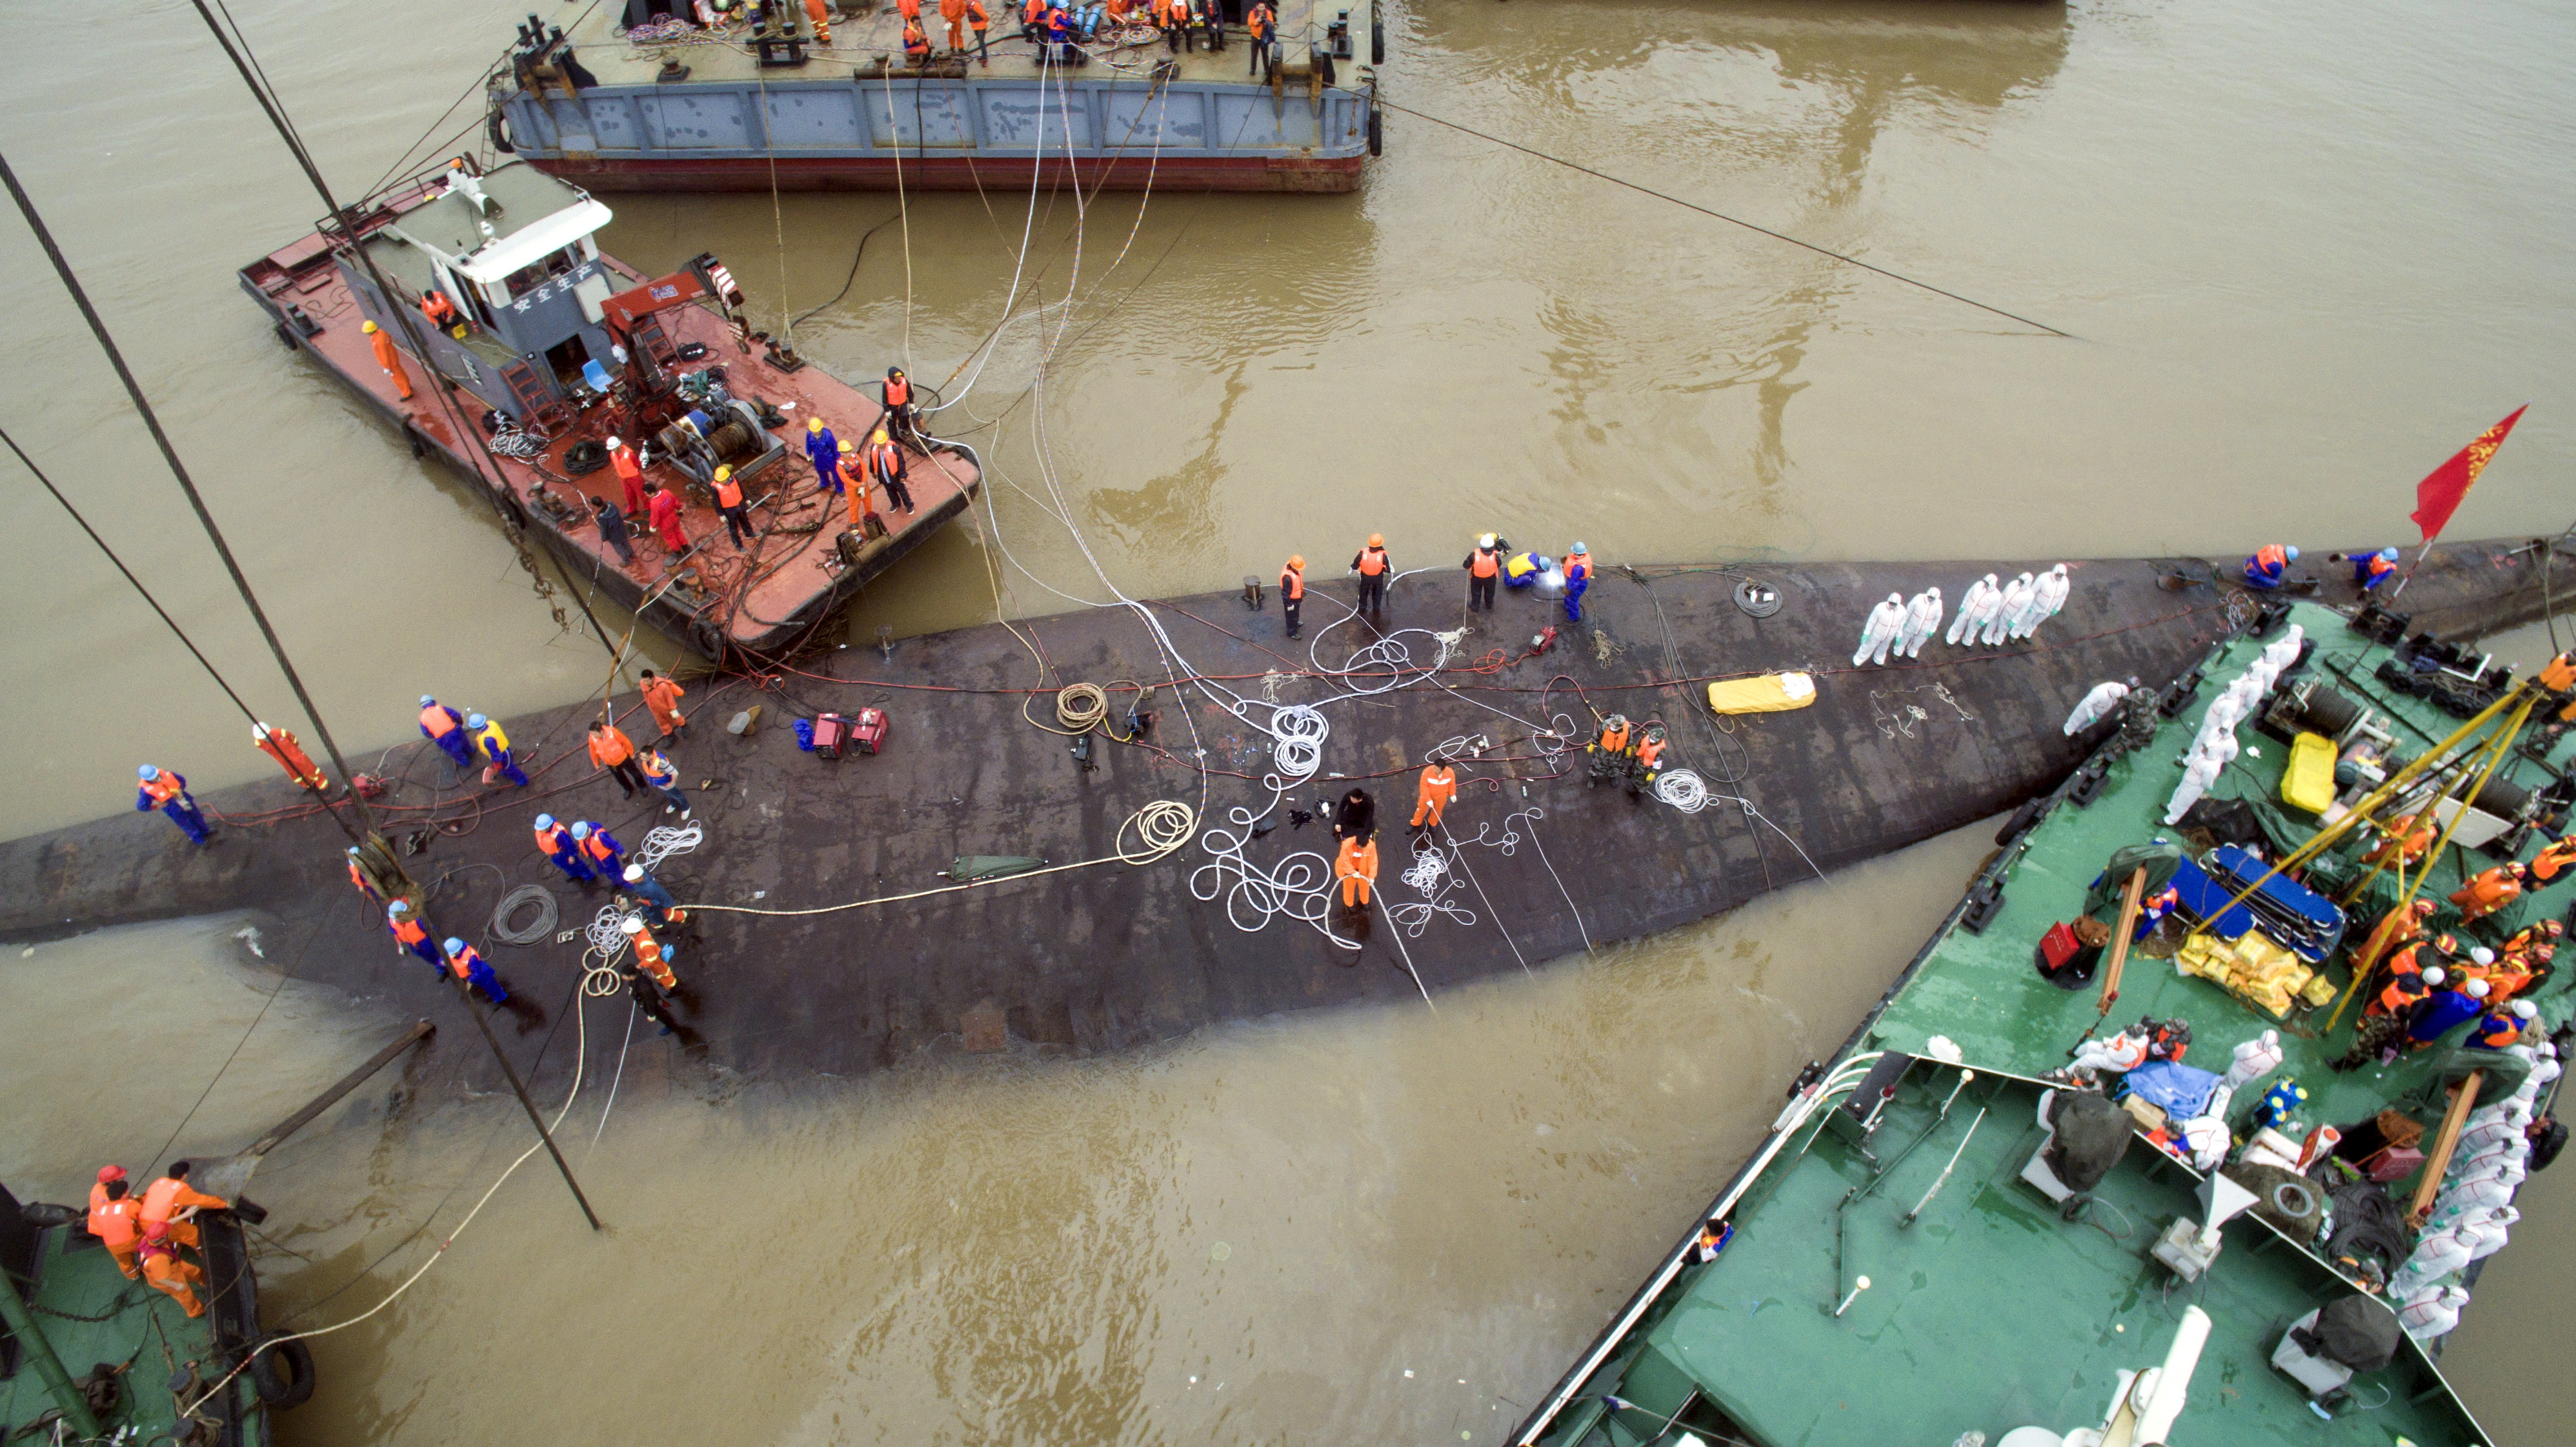 An aerial view shows rescue workers standing on the sunken cruise ship Eastern Star in Jianli, Hubei province, China, June 4, 2015